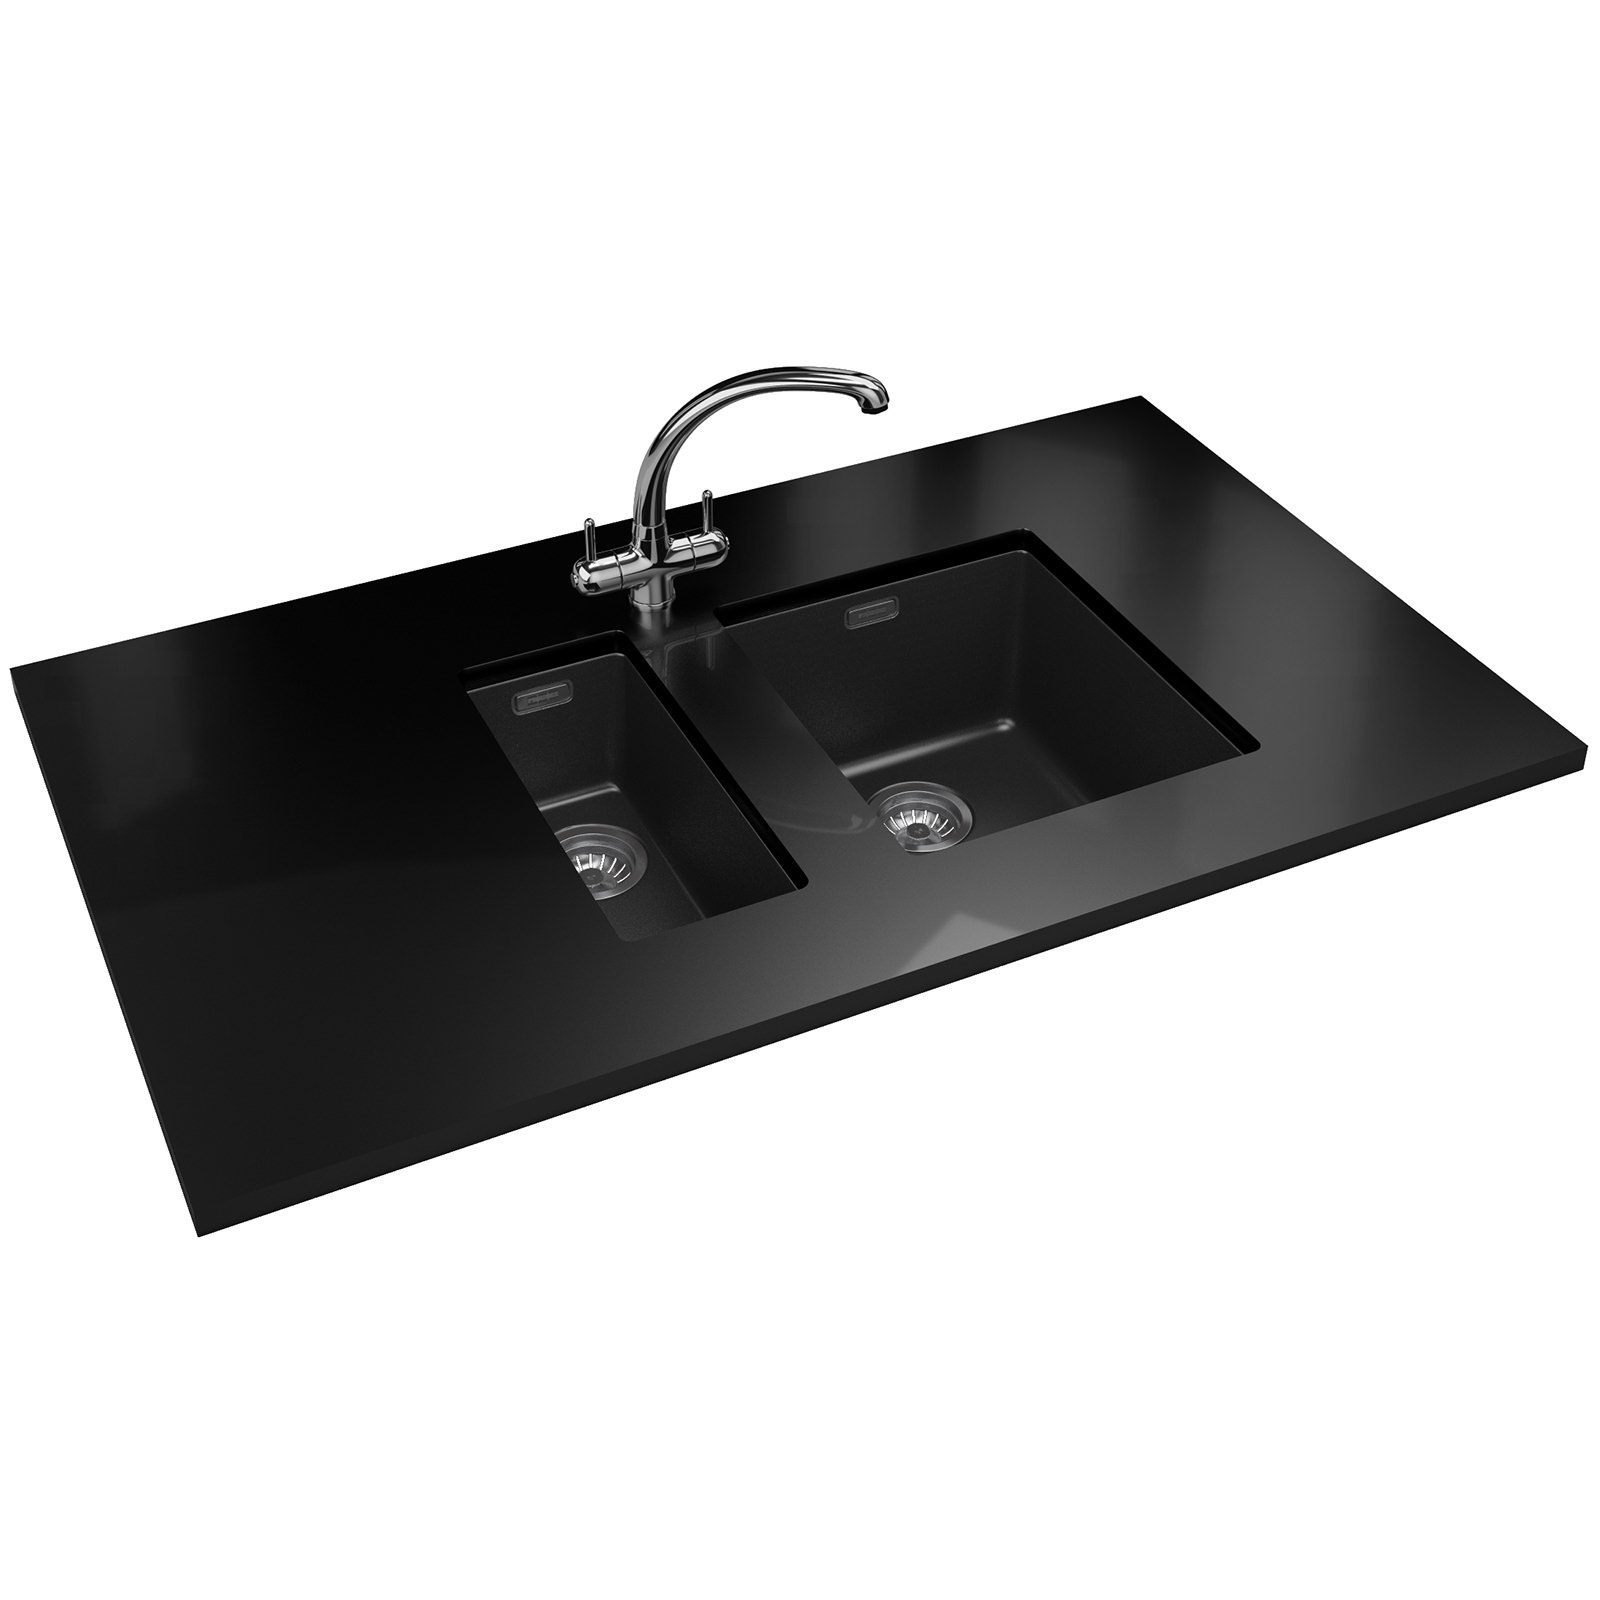 Franke Sink And Tap Packages : Franke Sirius PP SID 110 16 + SID 110 34 Tectonite Black Sink And Tap ...